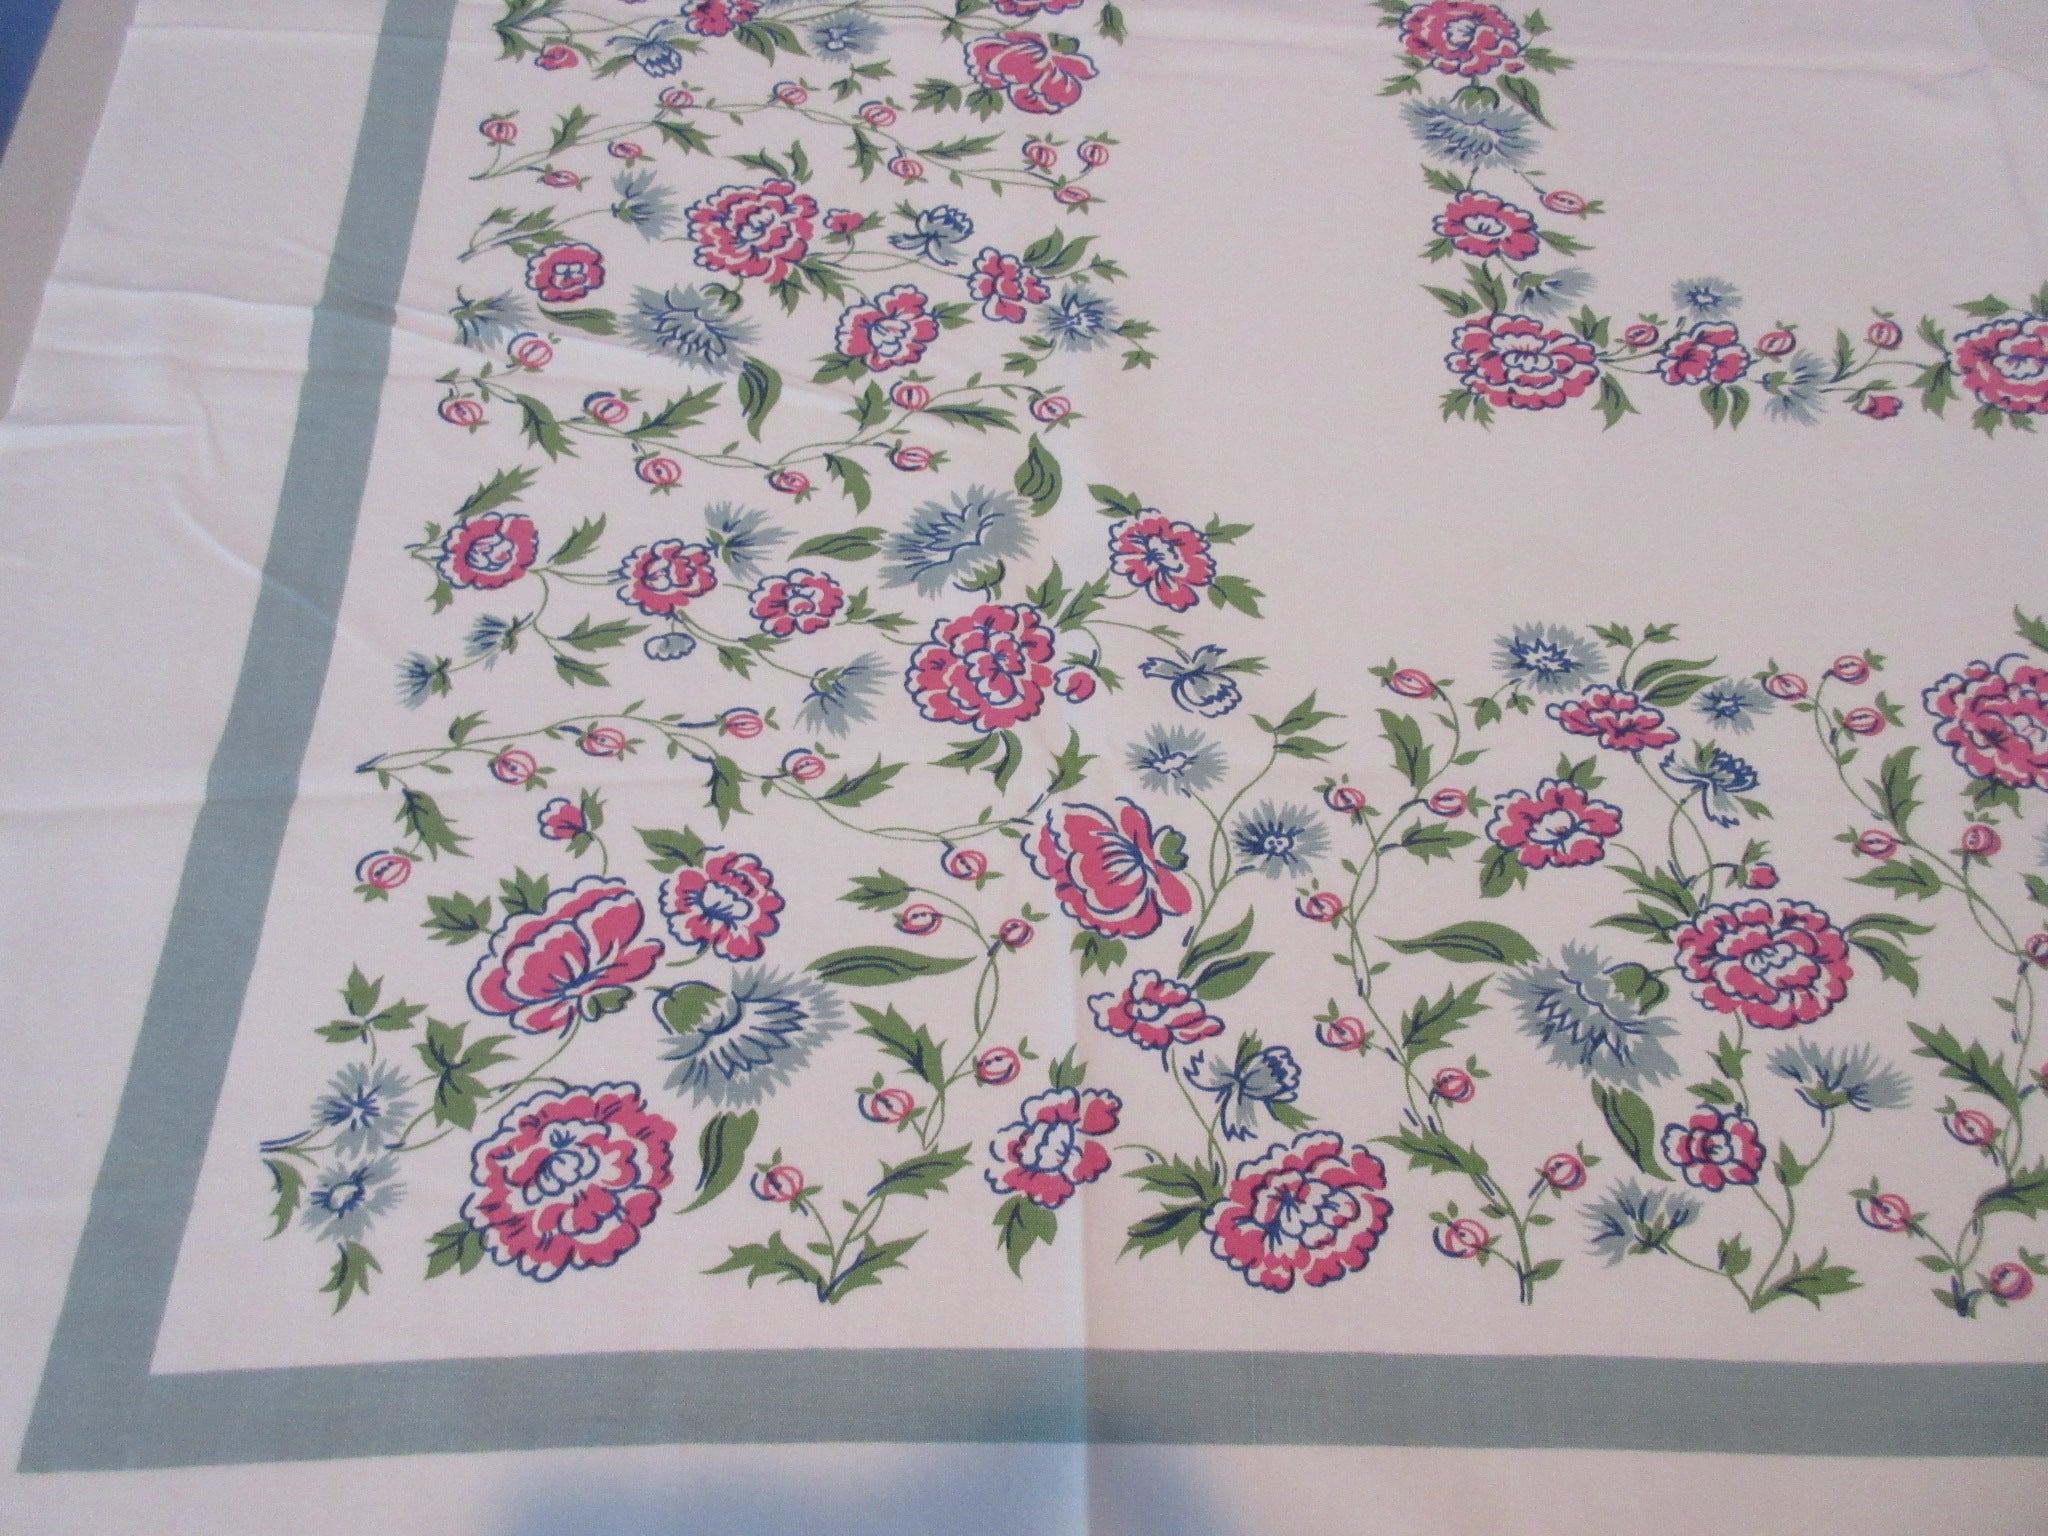 Pink Chrysanthemums on Teal Floral Vintage Printed Tablecloth (52 X 45)